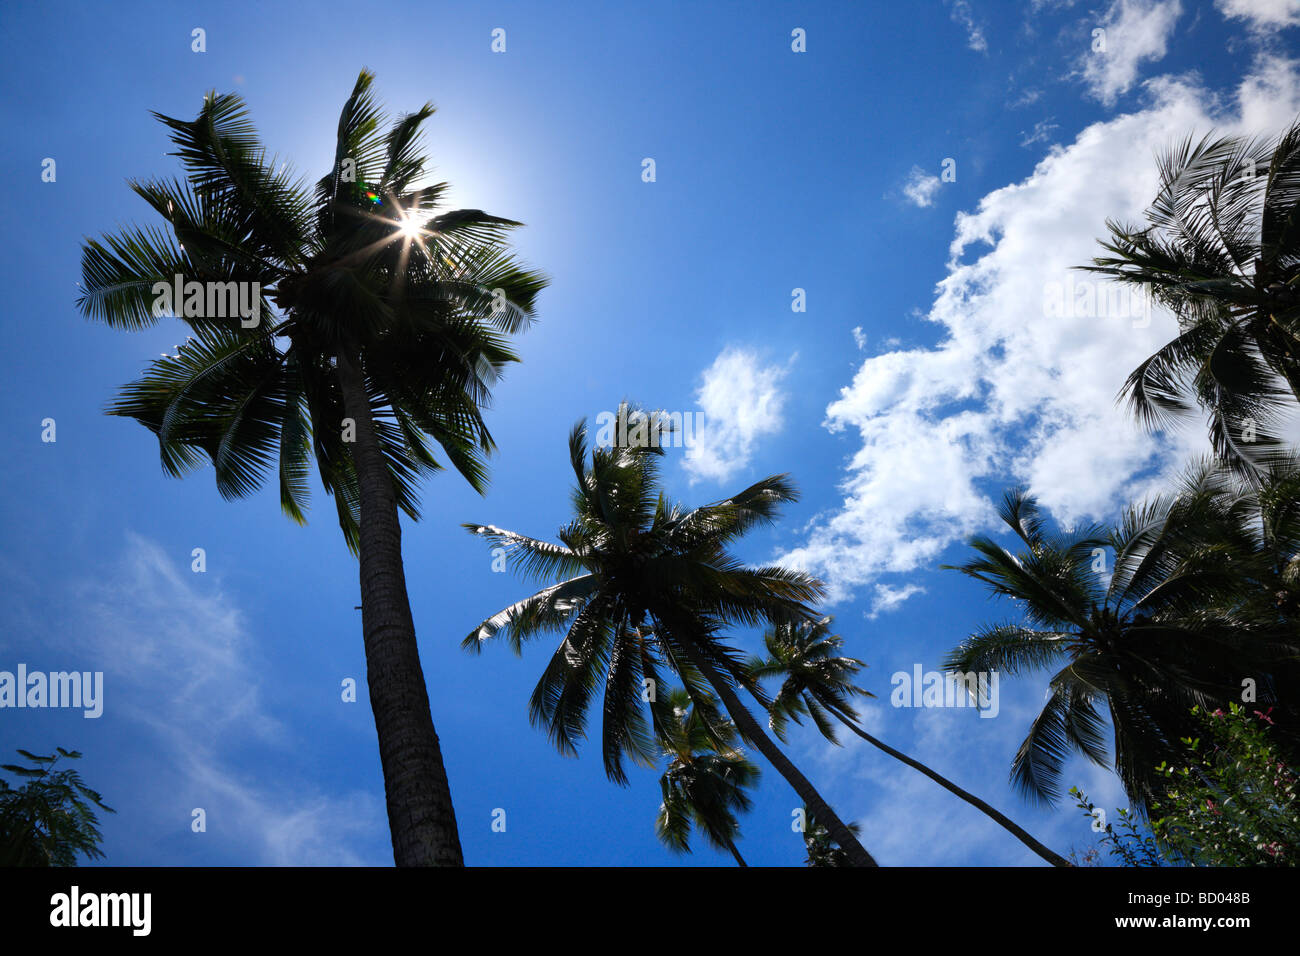 Coconut palm trees, French Polynesia - Stock Image